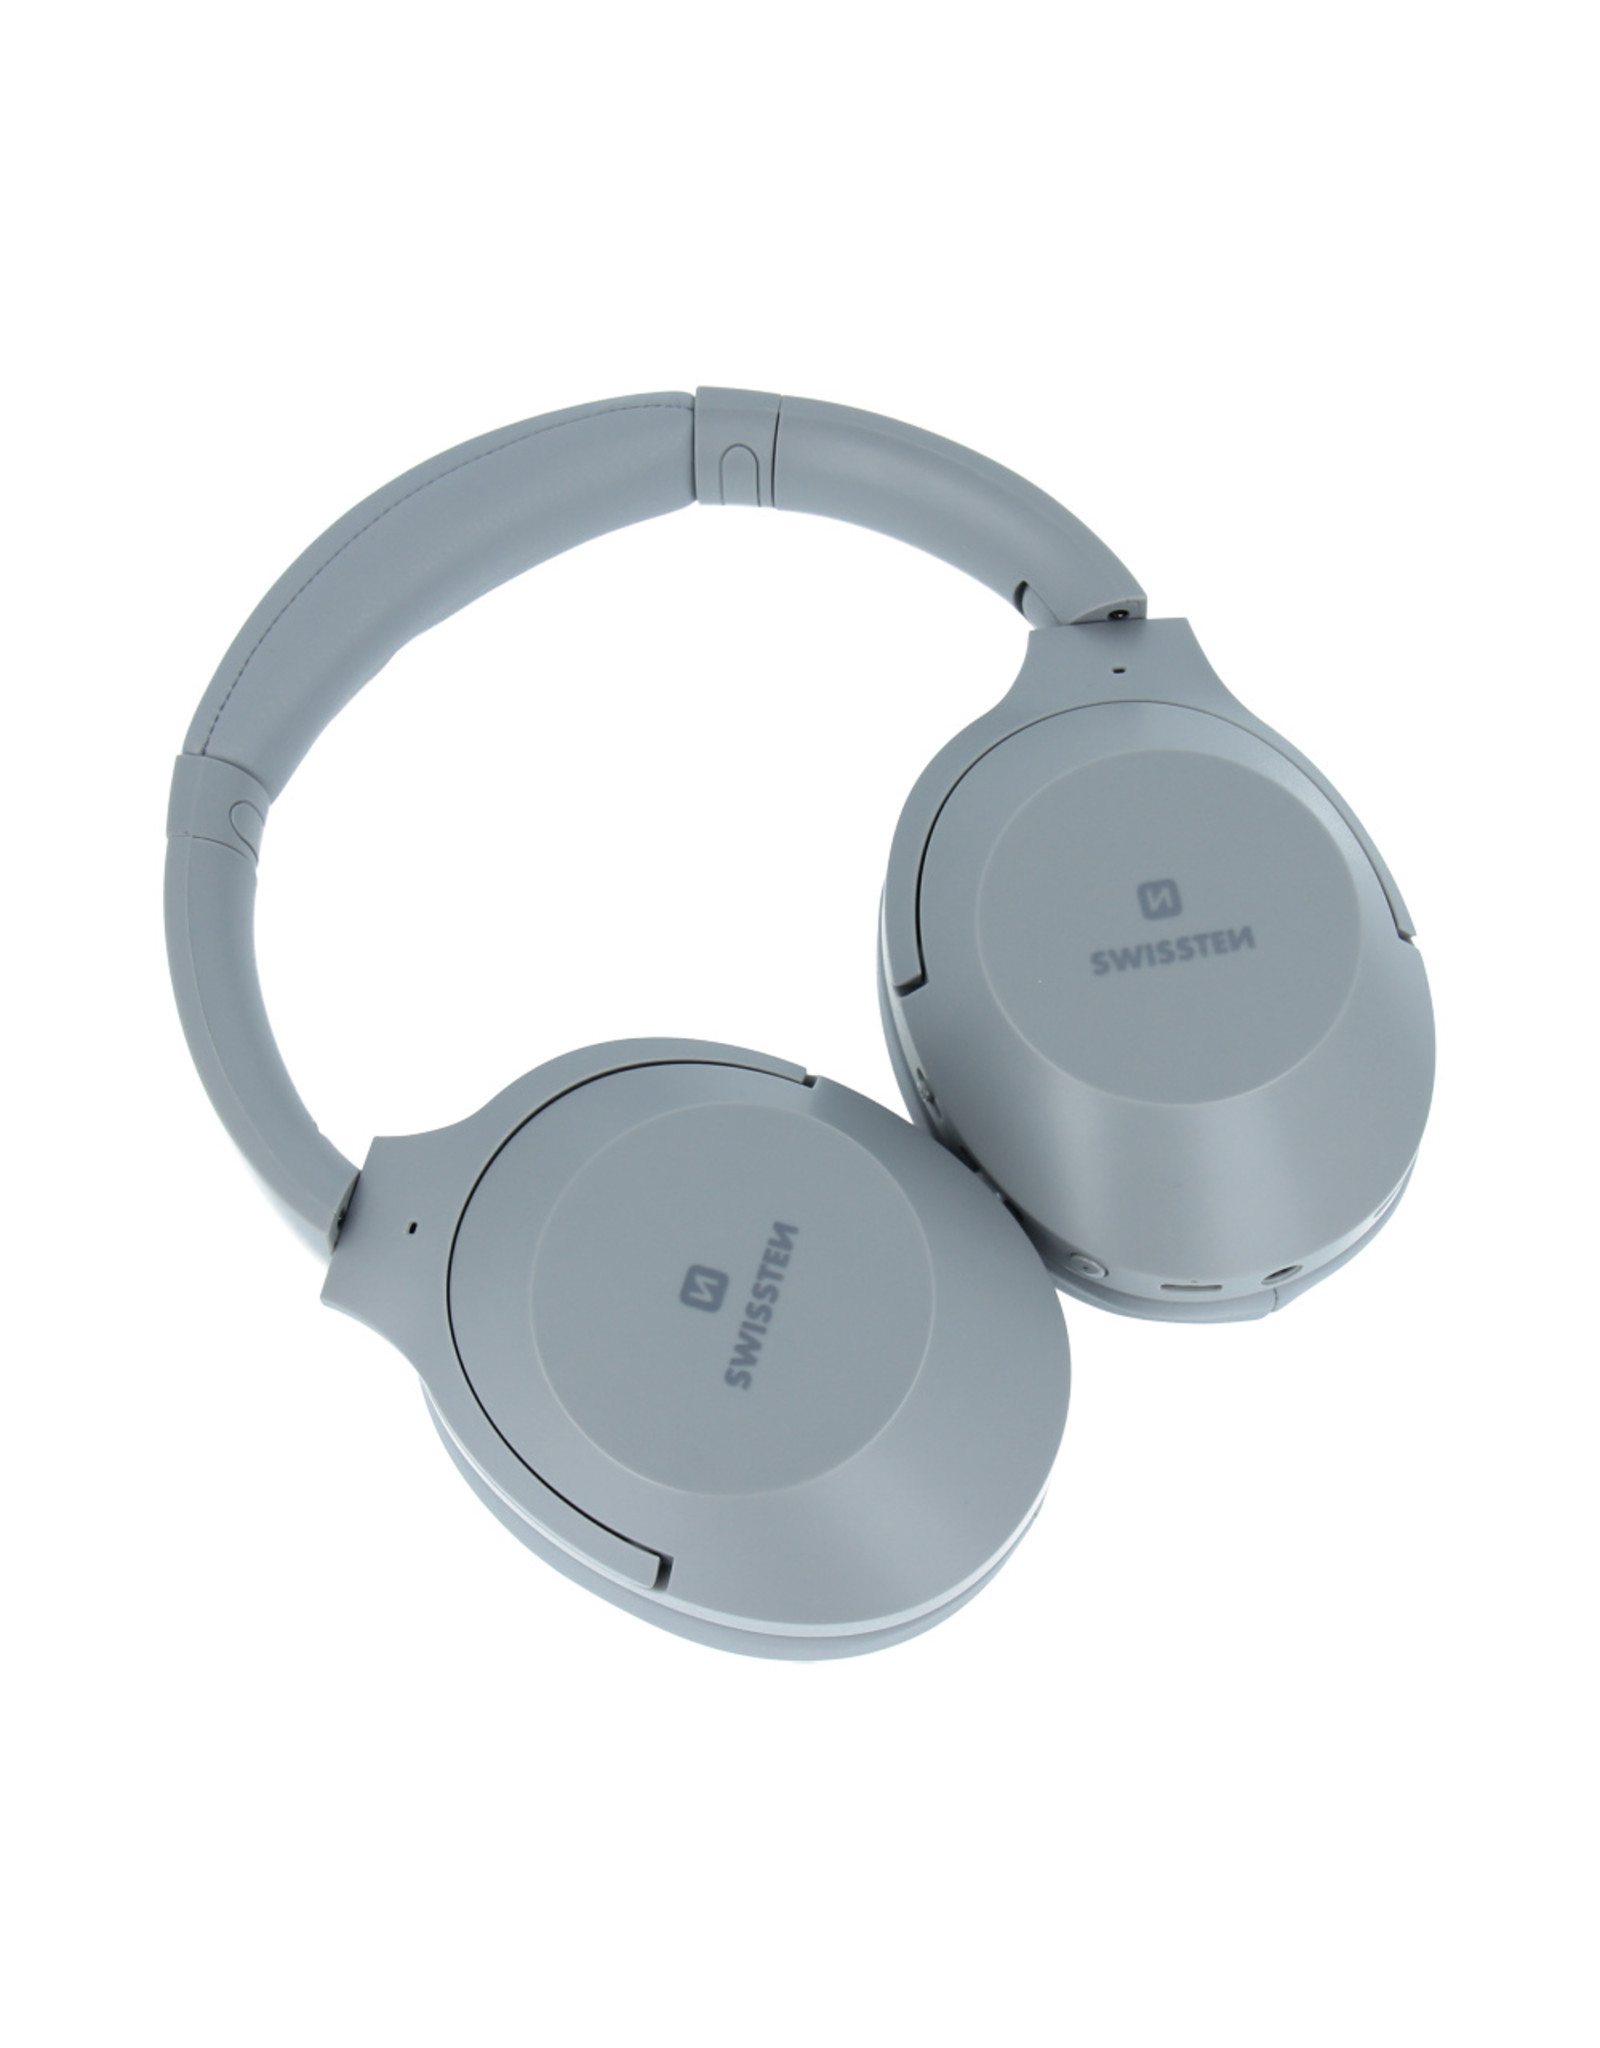 Swissten Swissten hurricane Wireless stereo headphones